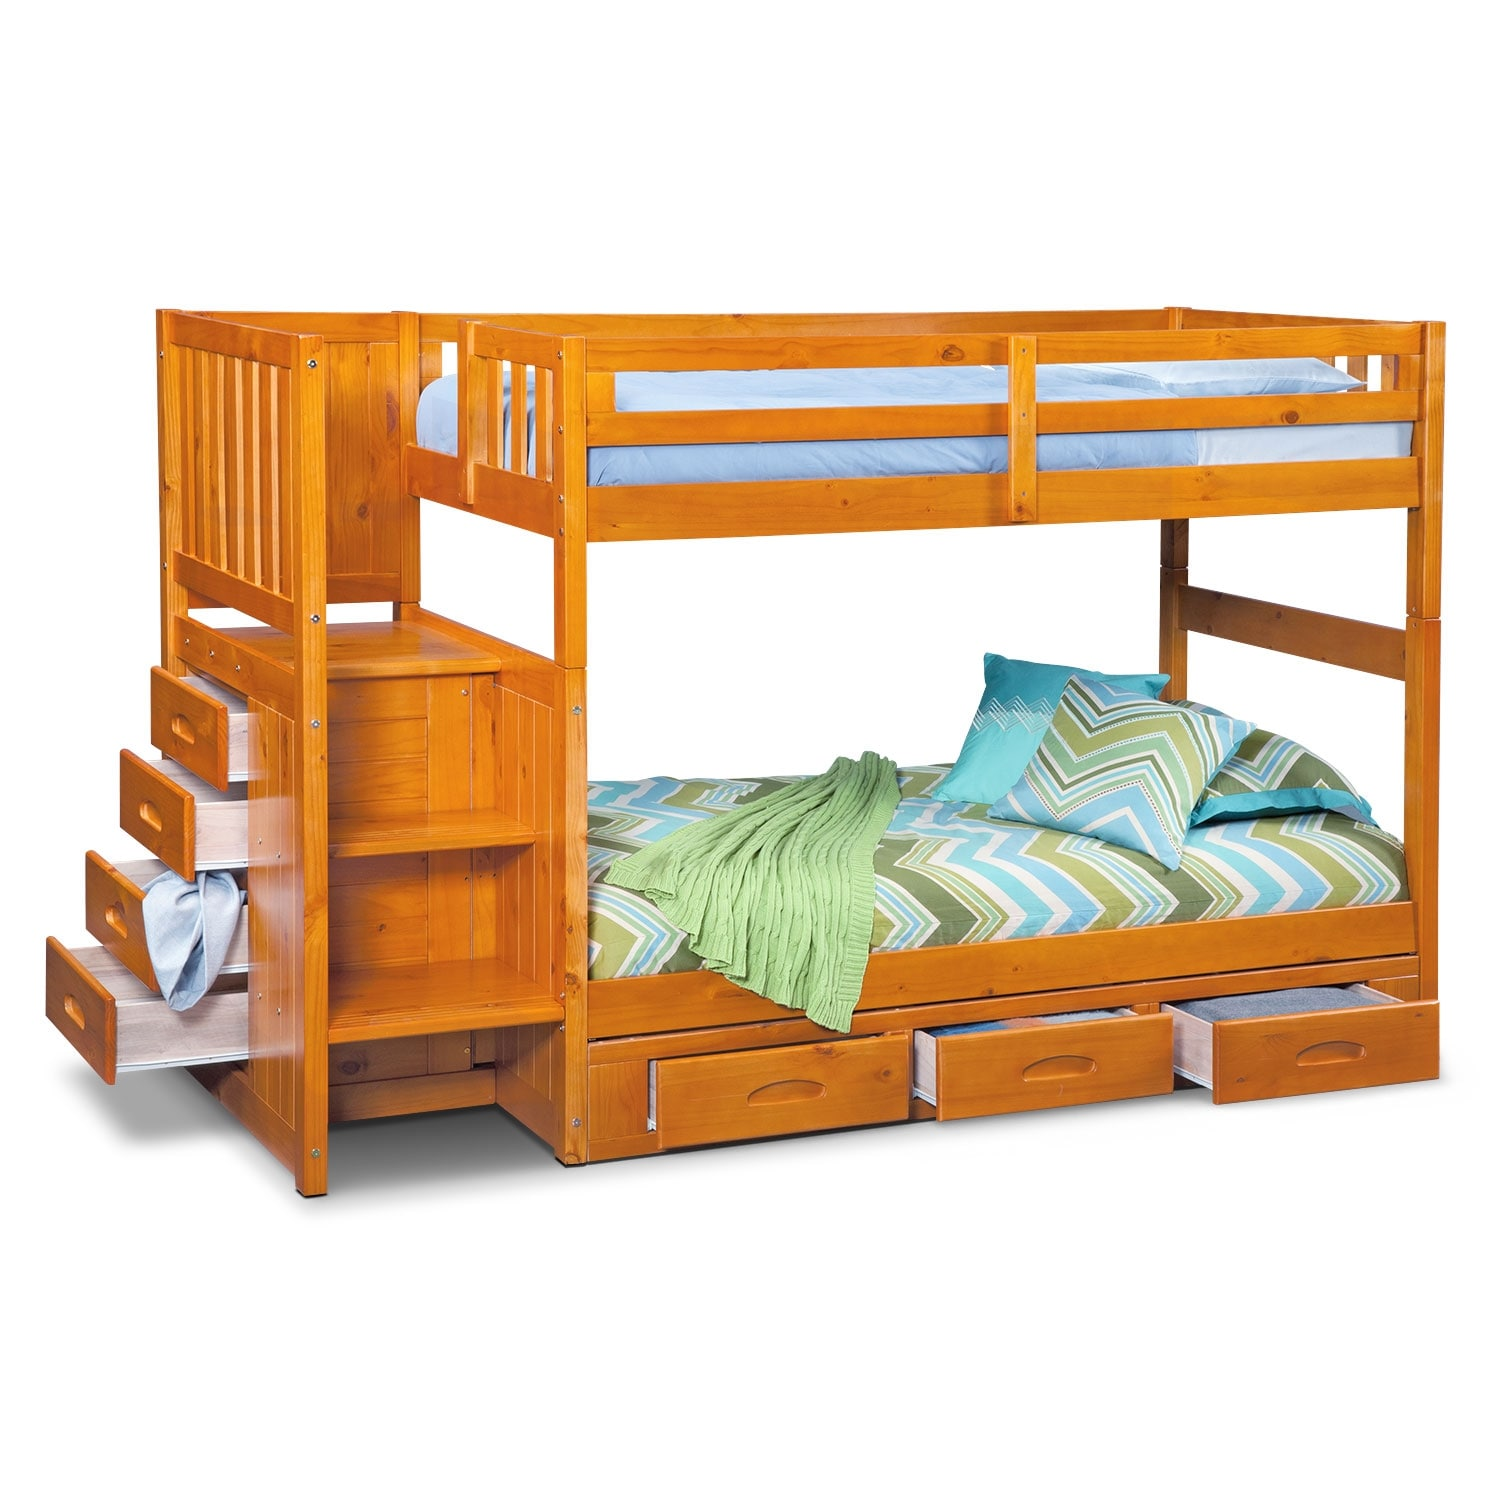 Najarian Nba Youth Bedroom In A Box: Ranger Pine Twin/Twin Bunk Bed W/ Stairs And 7-Drawer